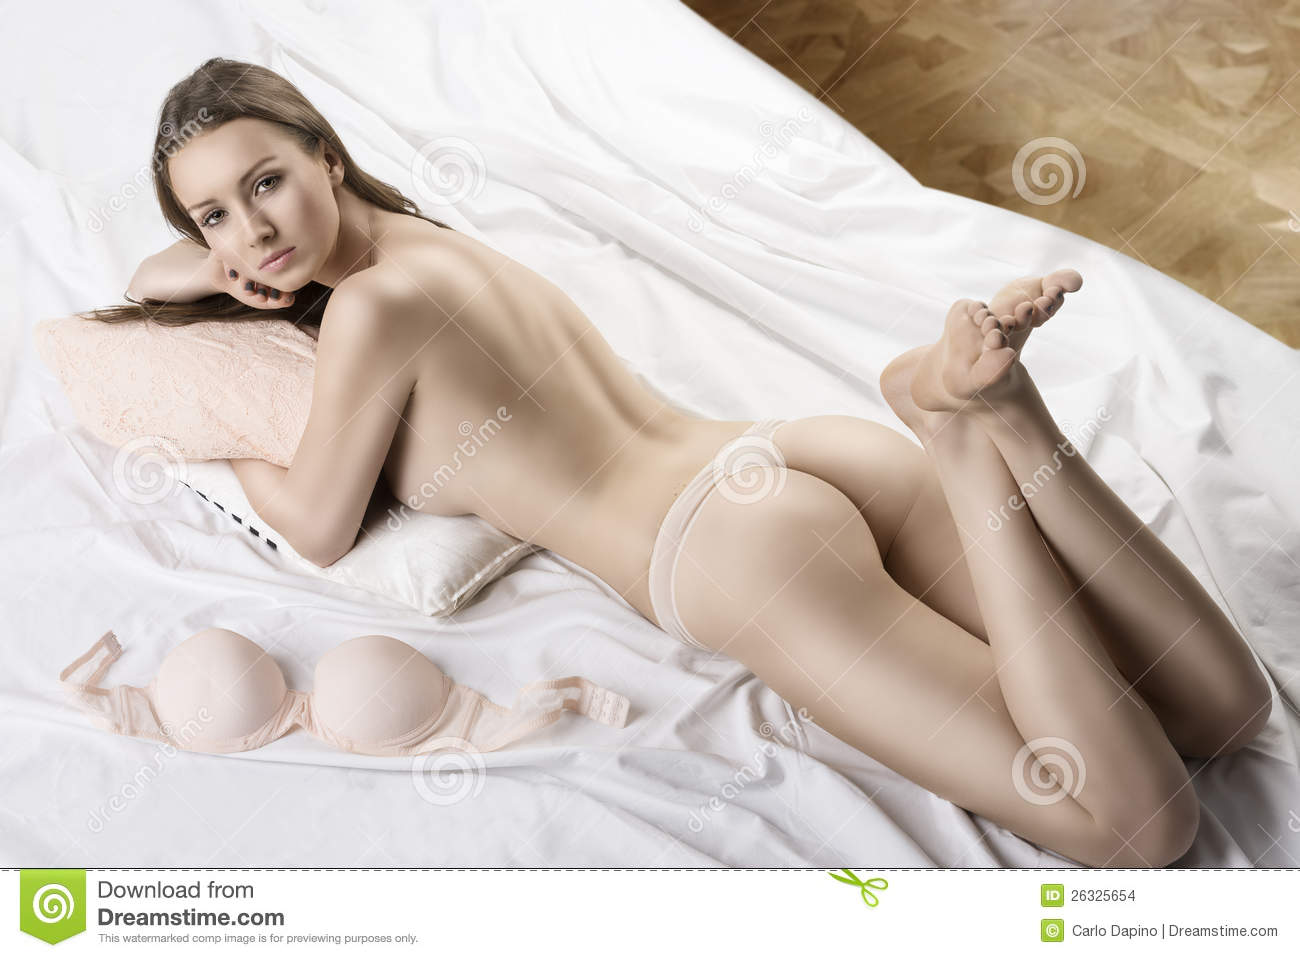 Nude female on bed